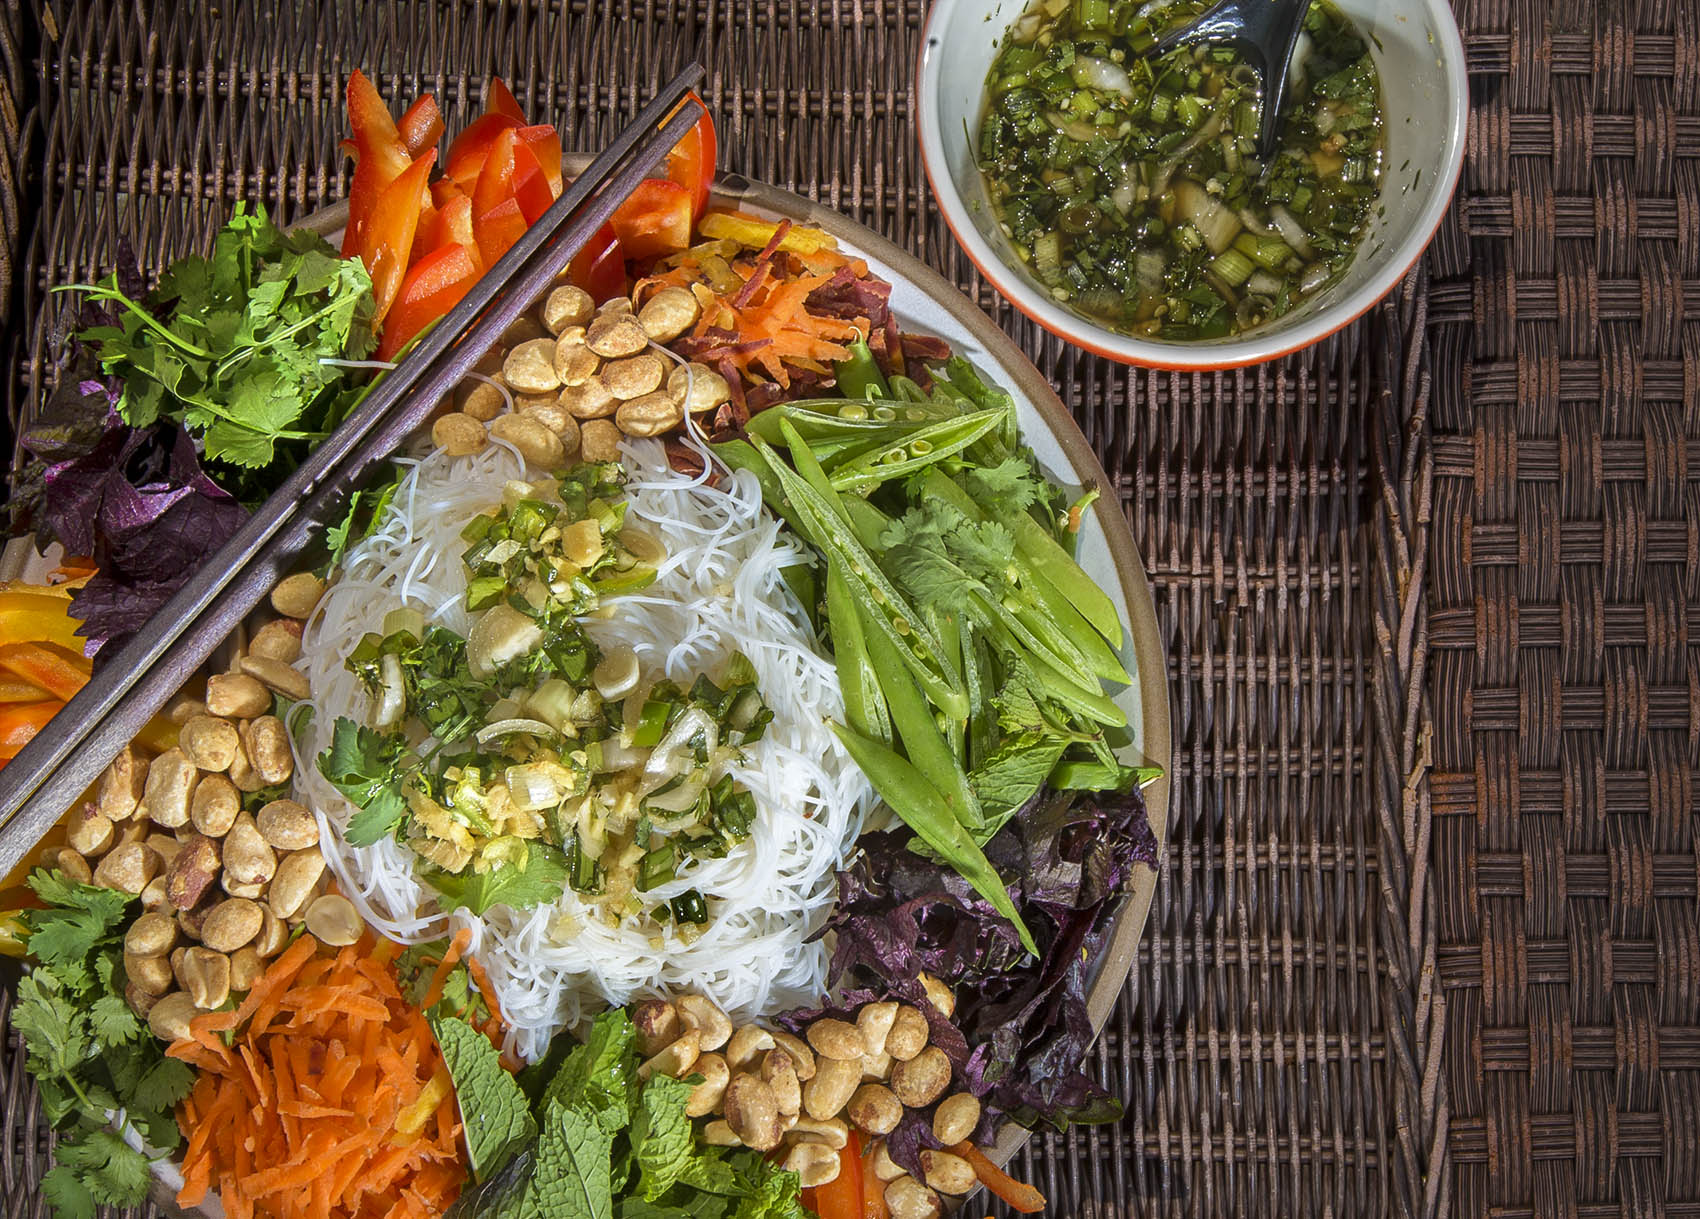 Chef Kathy Gunst's Vietnamese-style rice noodle salad with vegetables, herbs and peanuts. (Jesse Costa/WBUR)